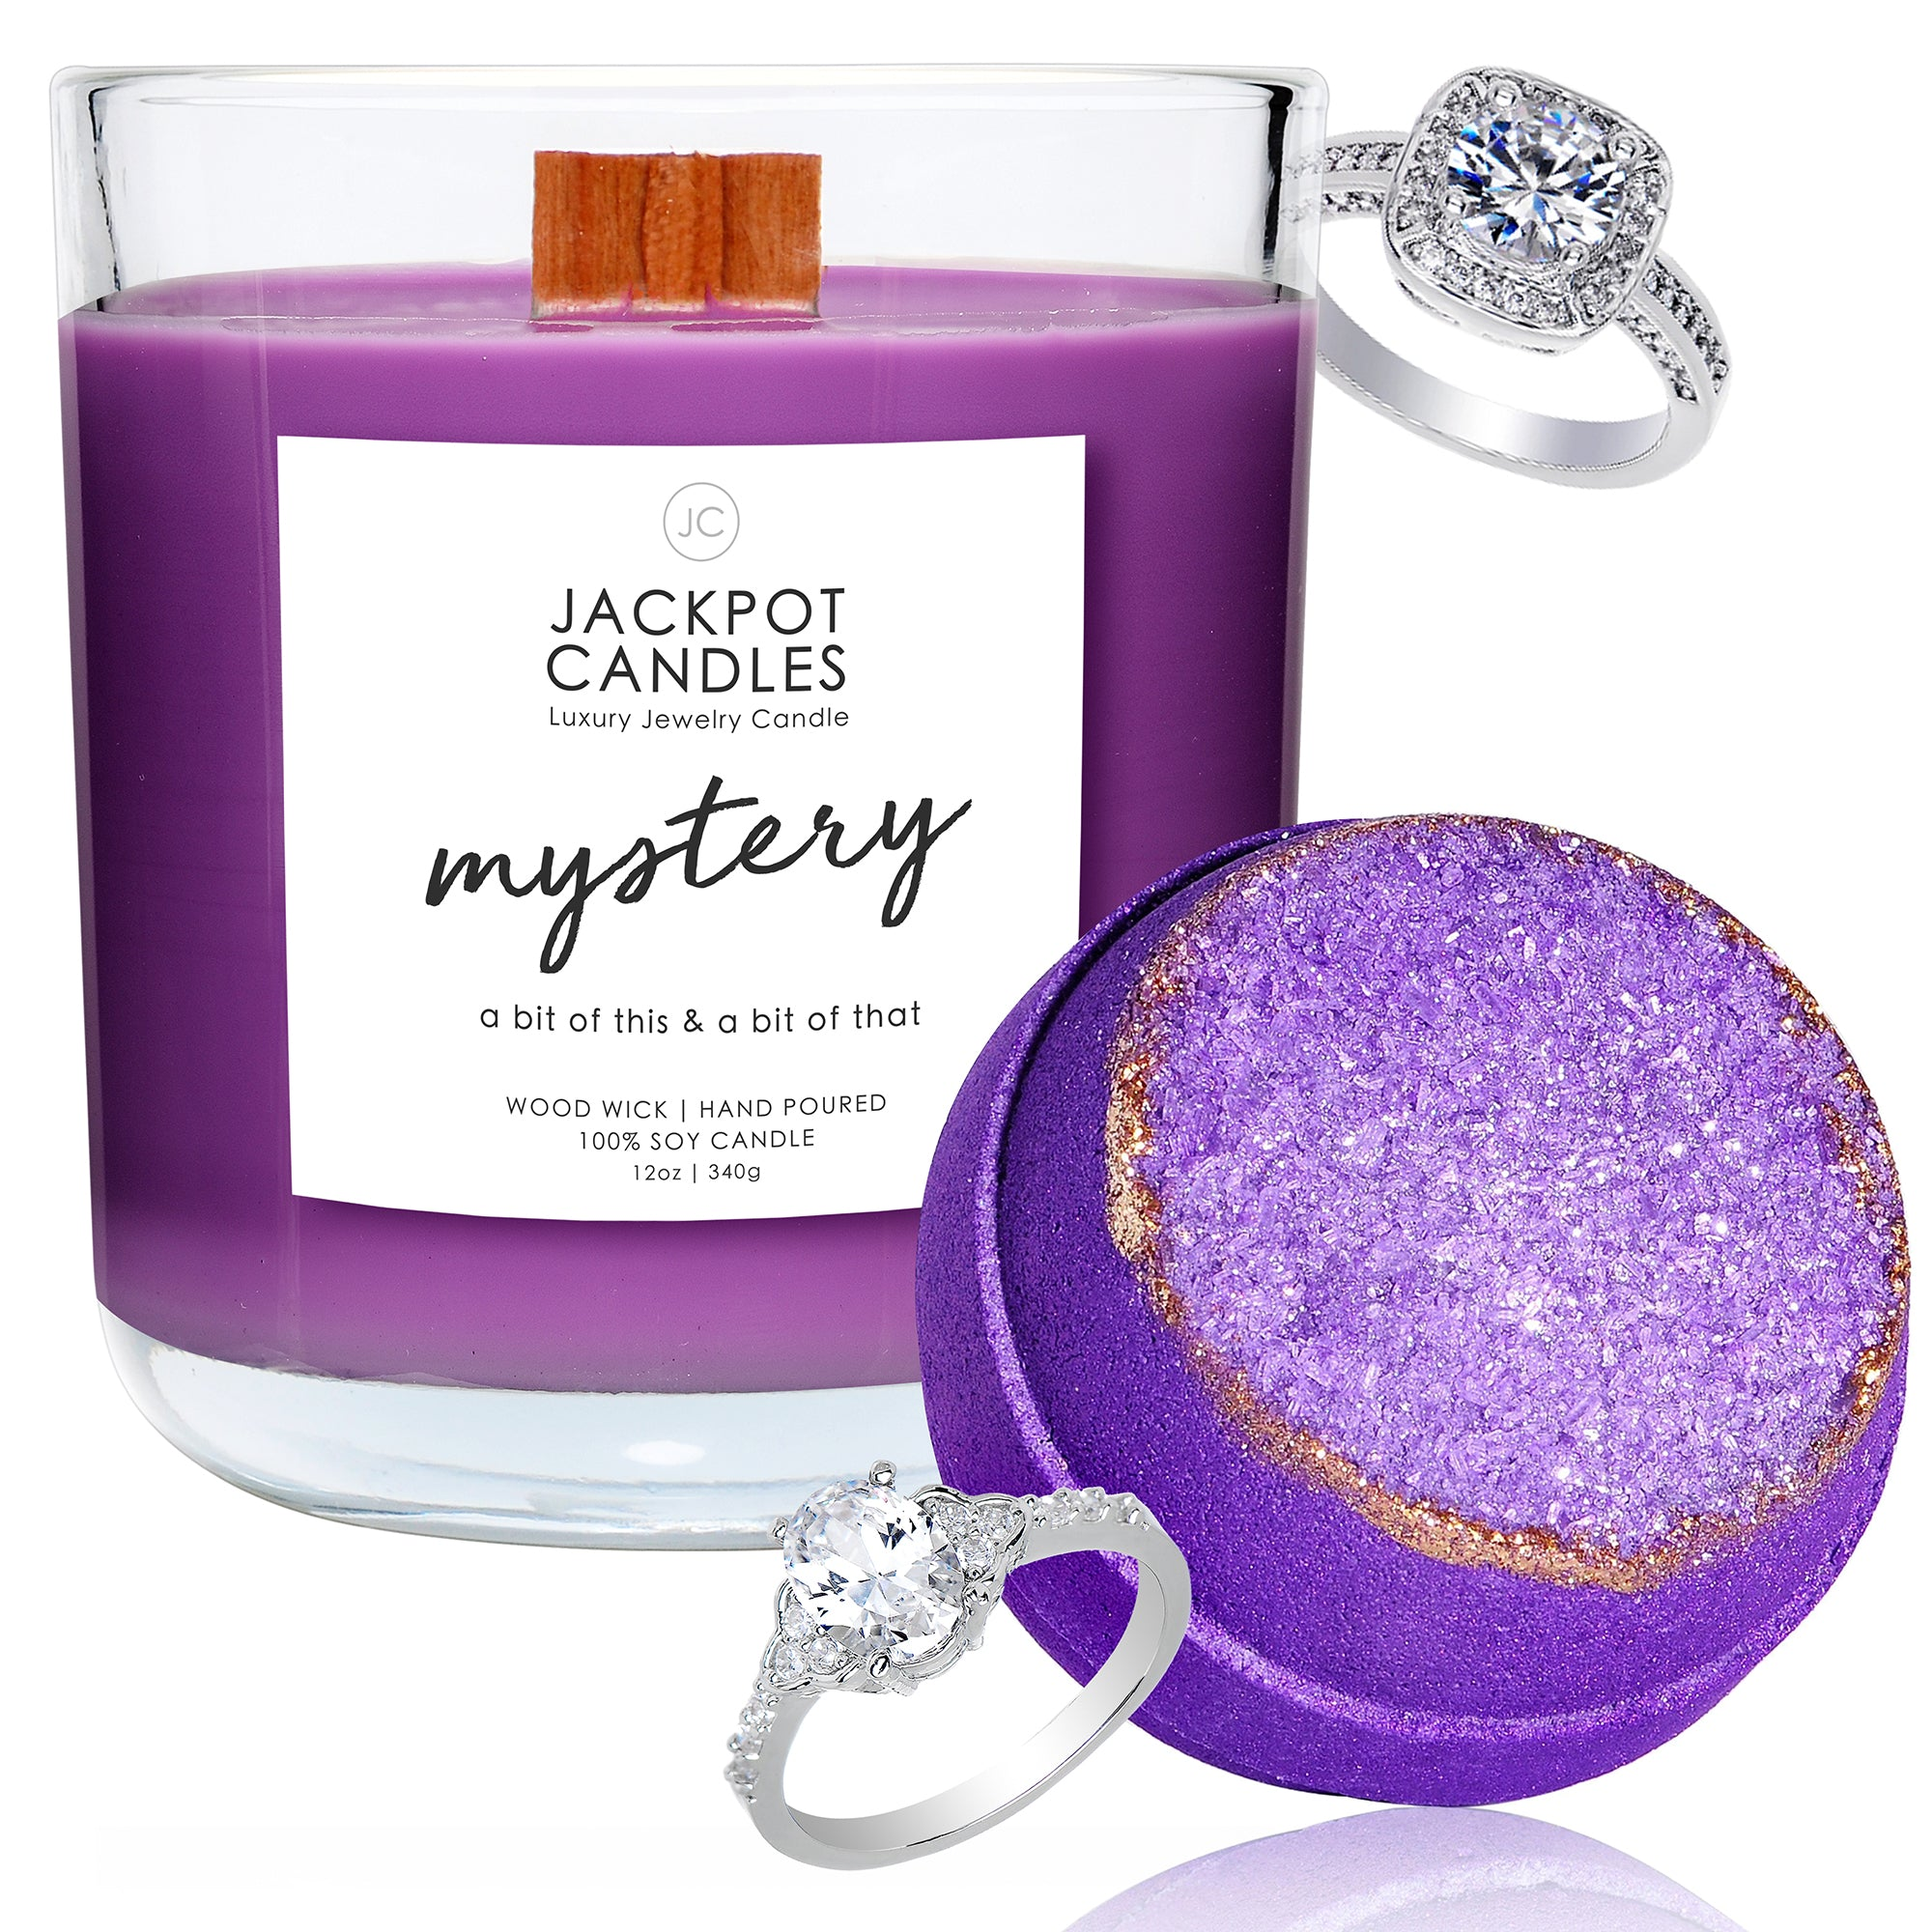 Adventure Wooden Wick Candle & Bath Bomb Gift Set